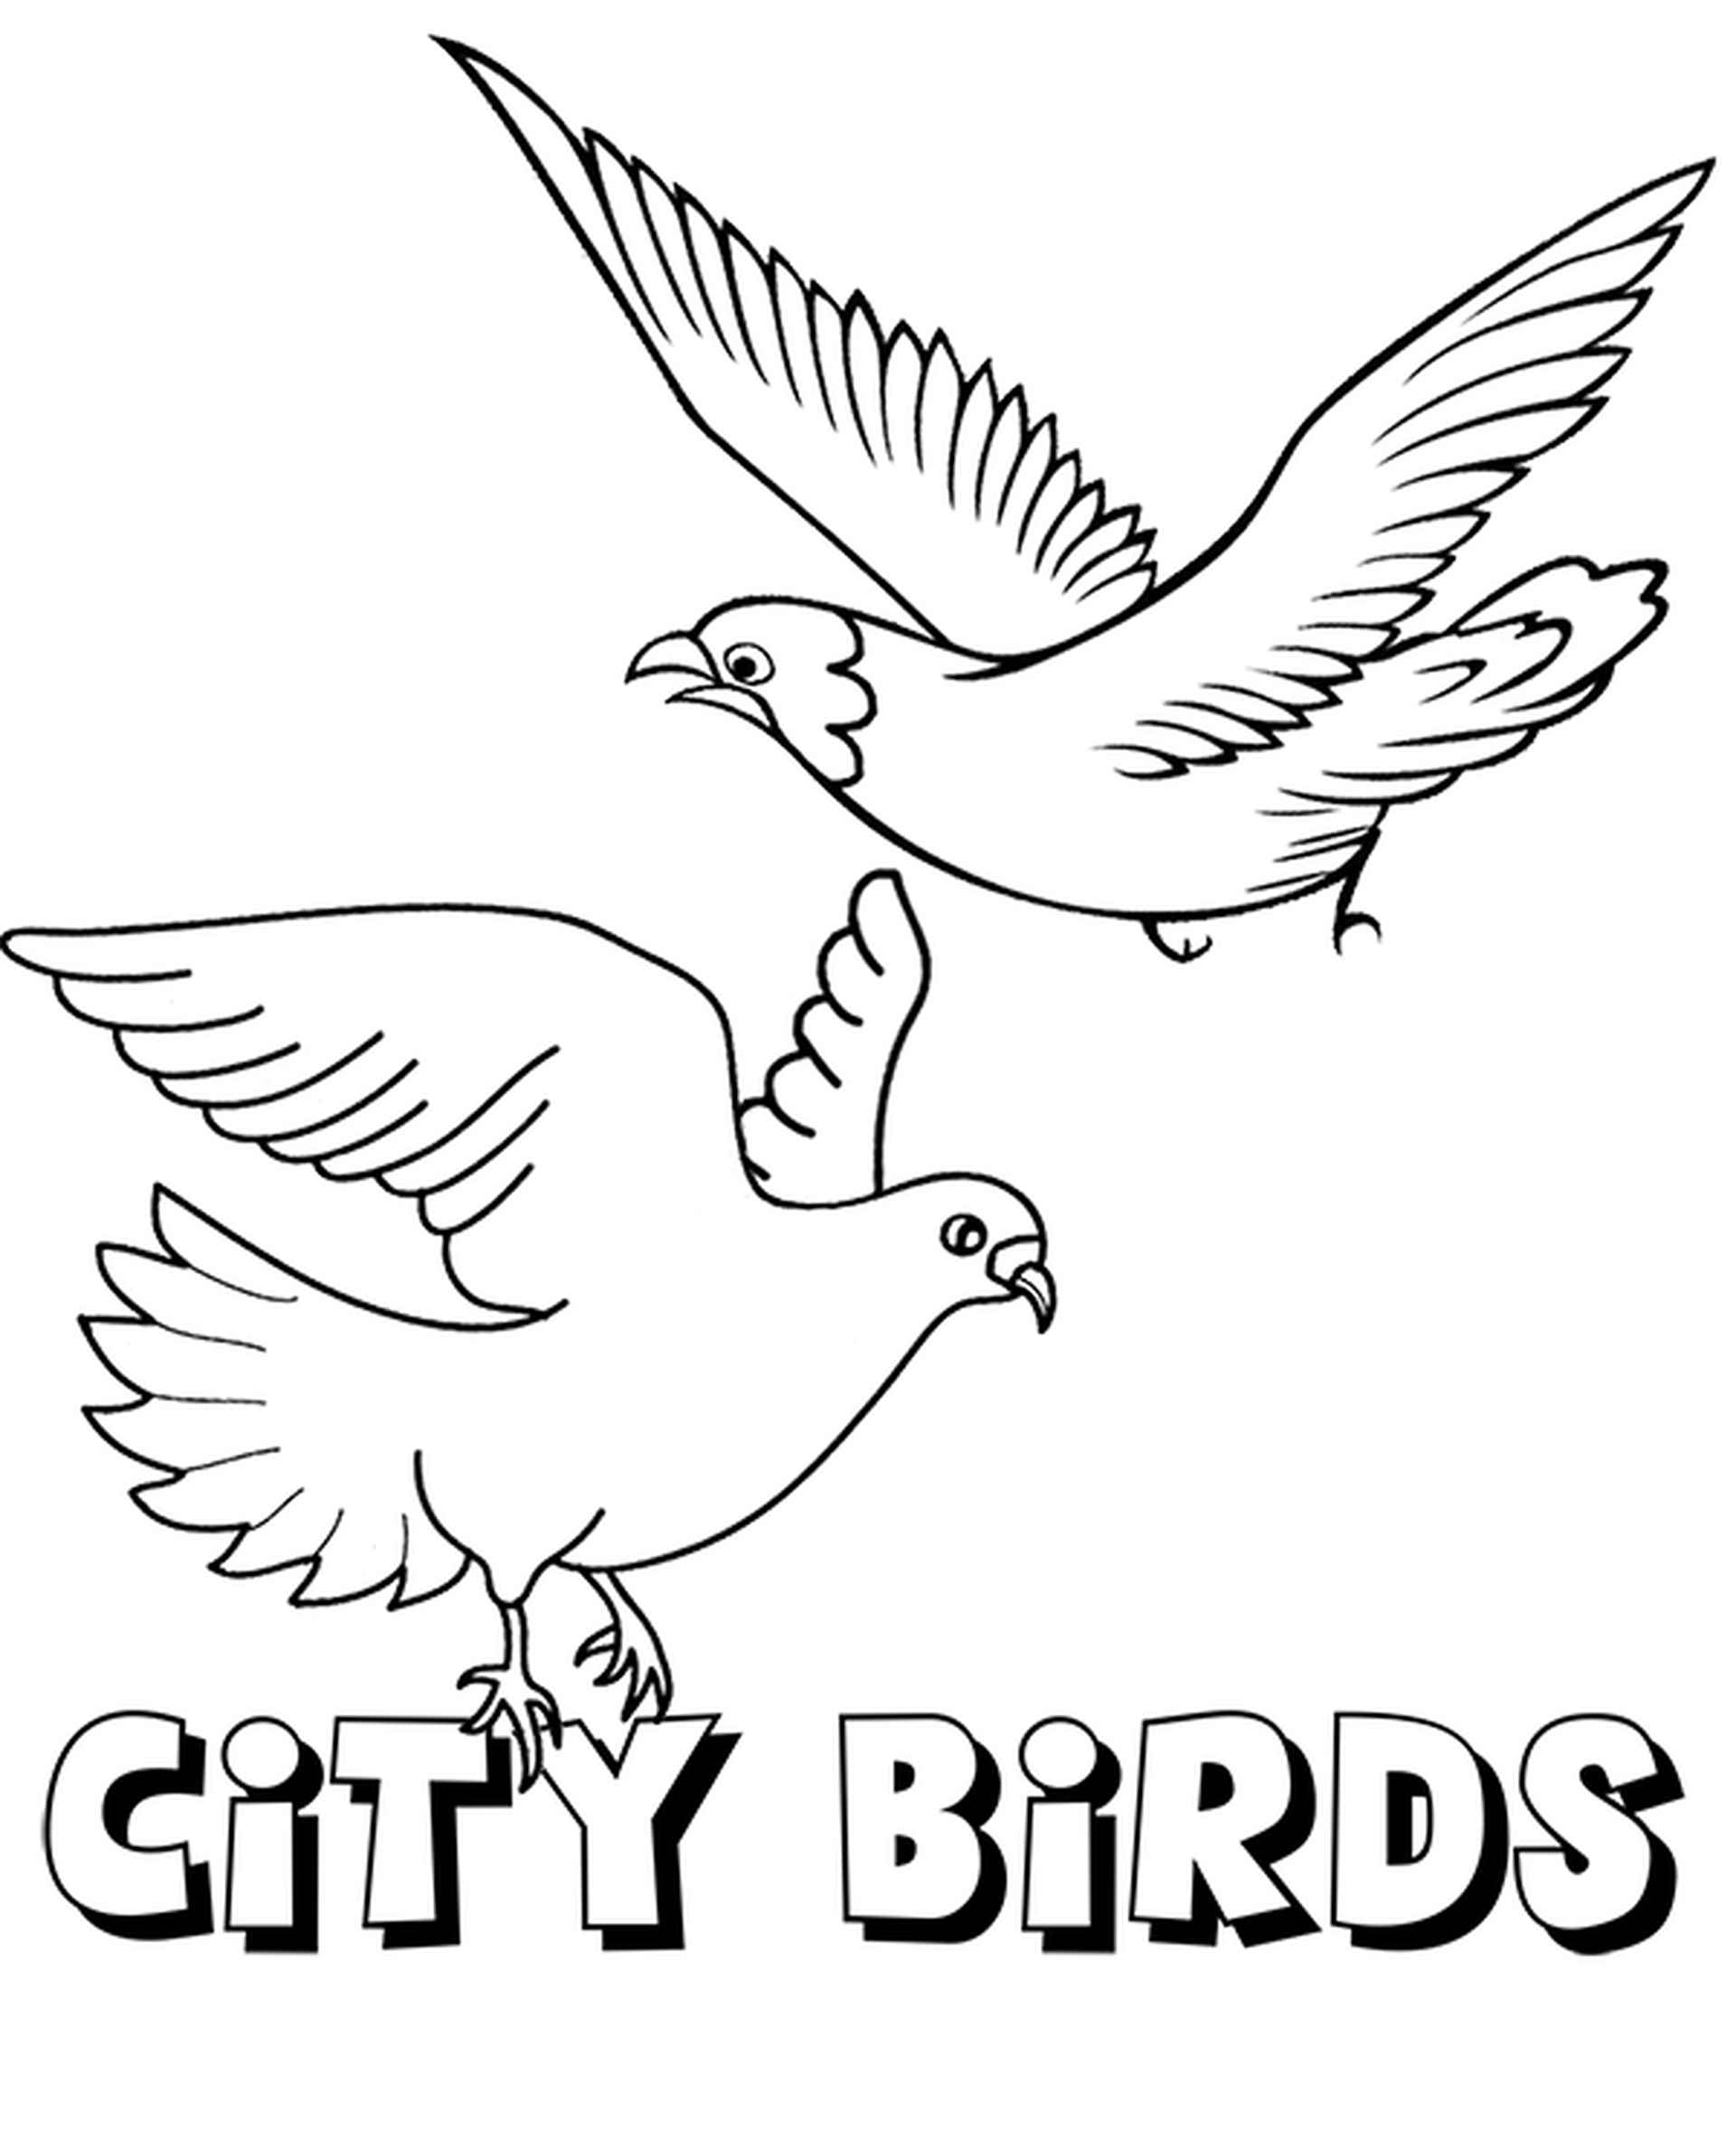 City Birds Pigeons Coloring Page